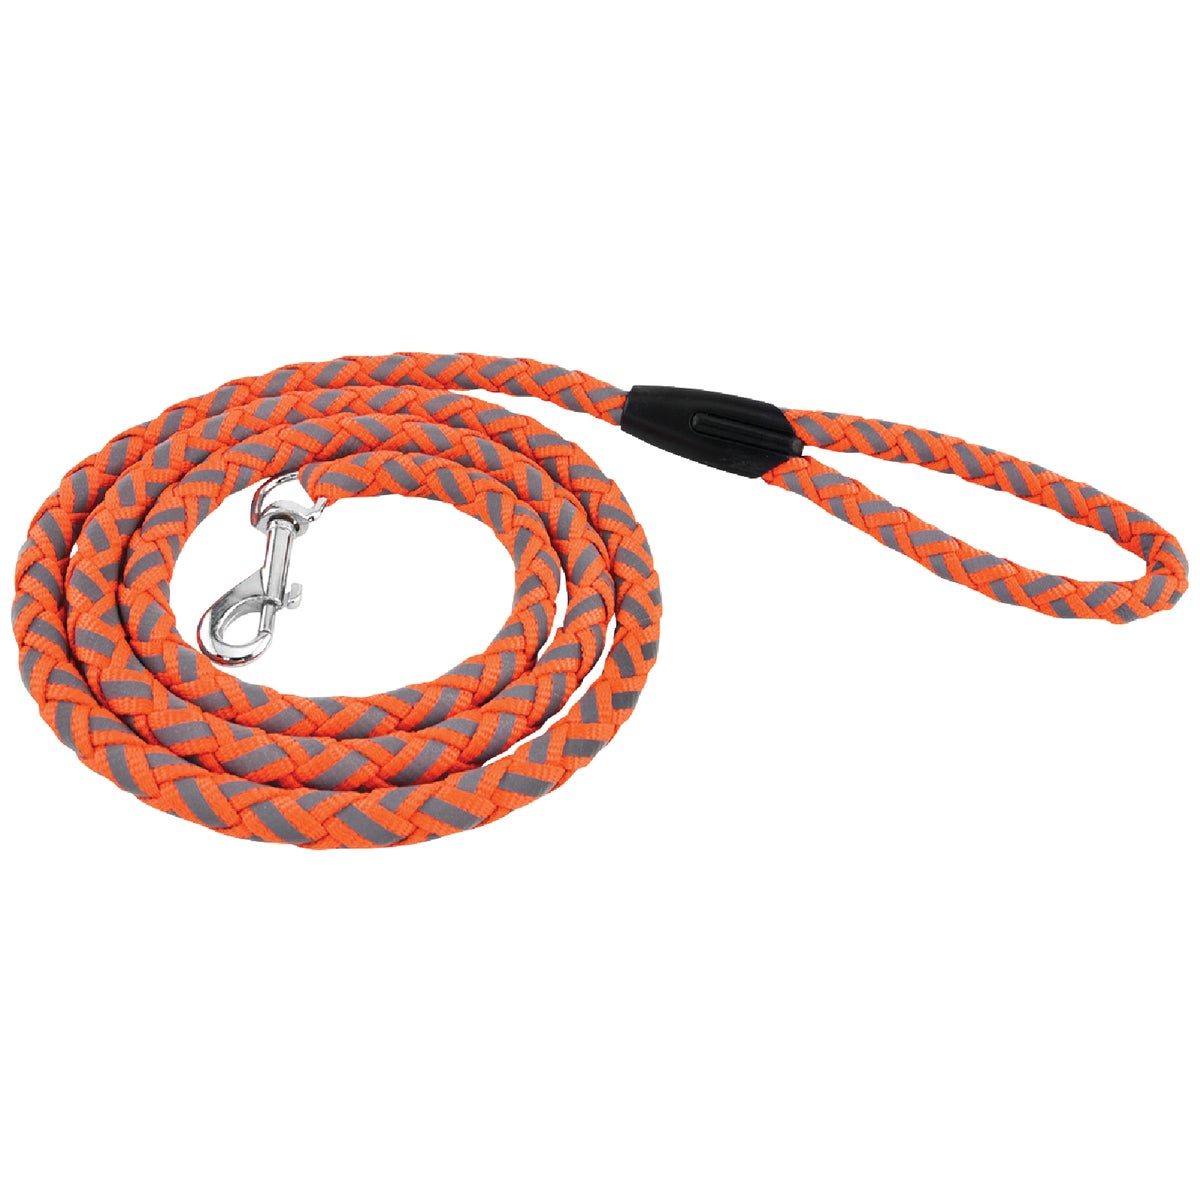 REFLECTIVE SAFETY LEASH